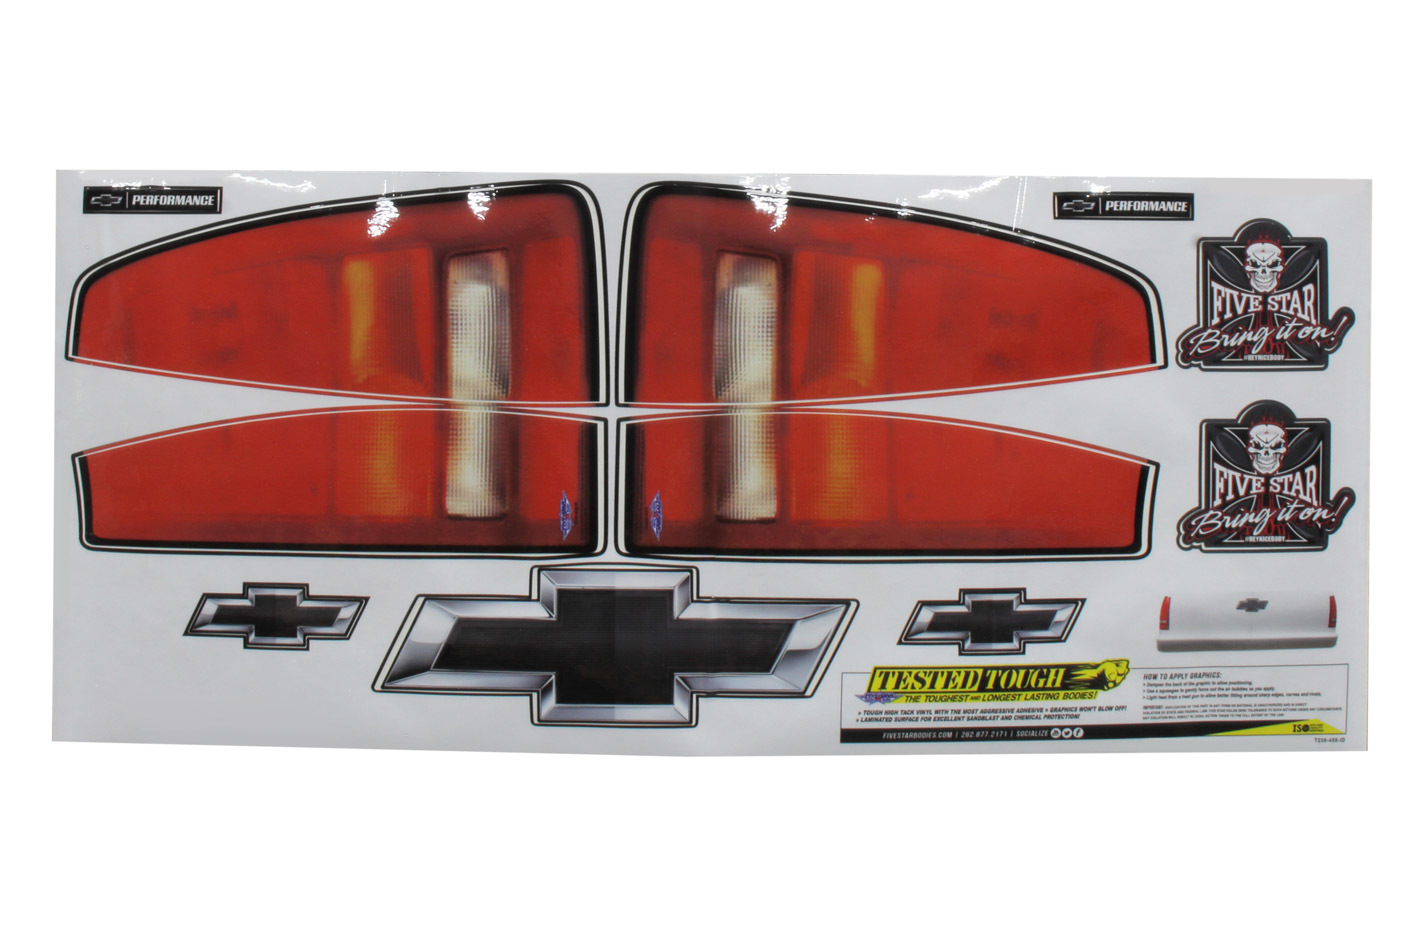 Fivestar Chevy Pkup Taillight Truck Decal Stickers